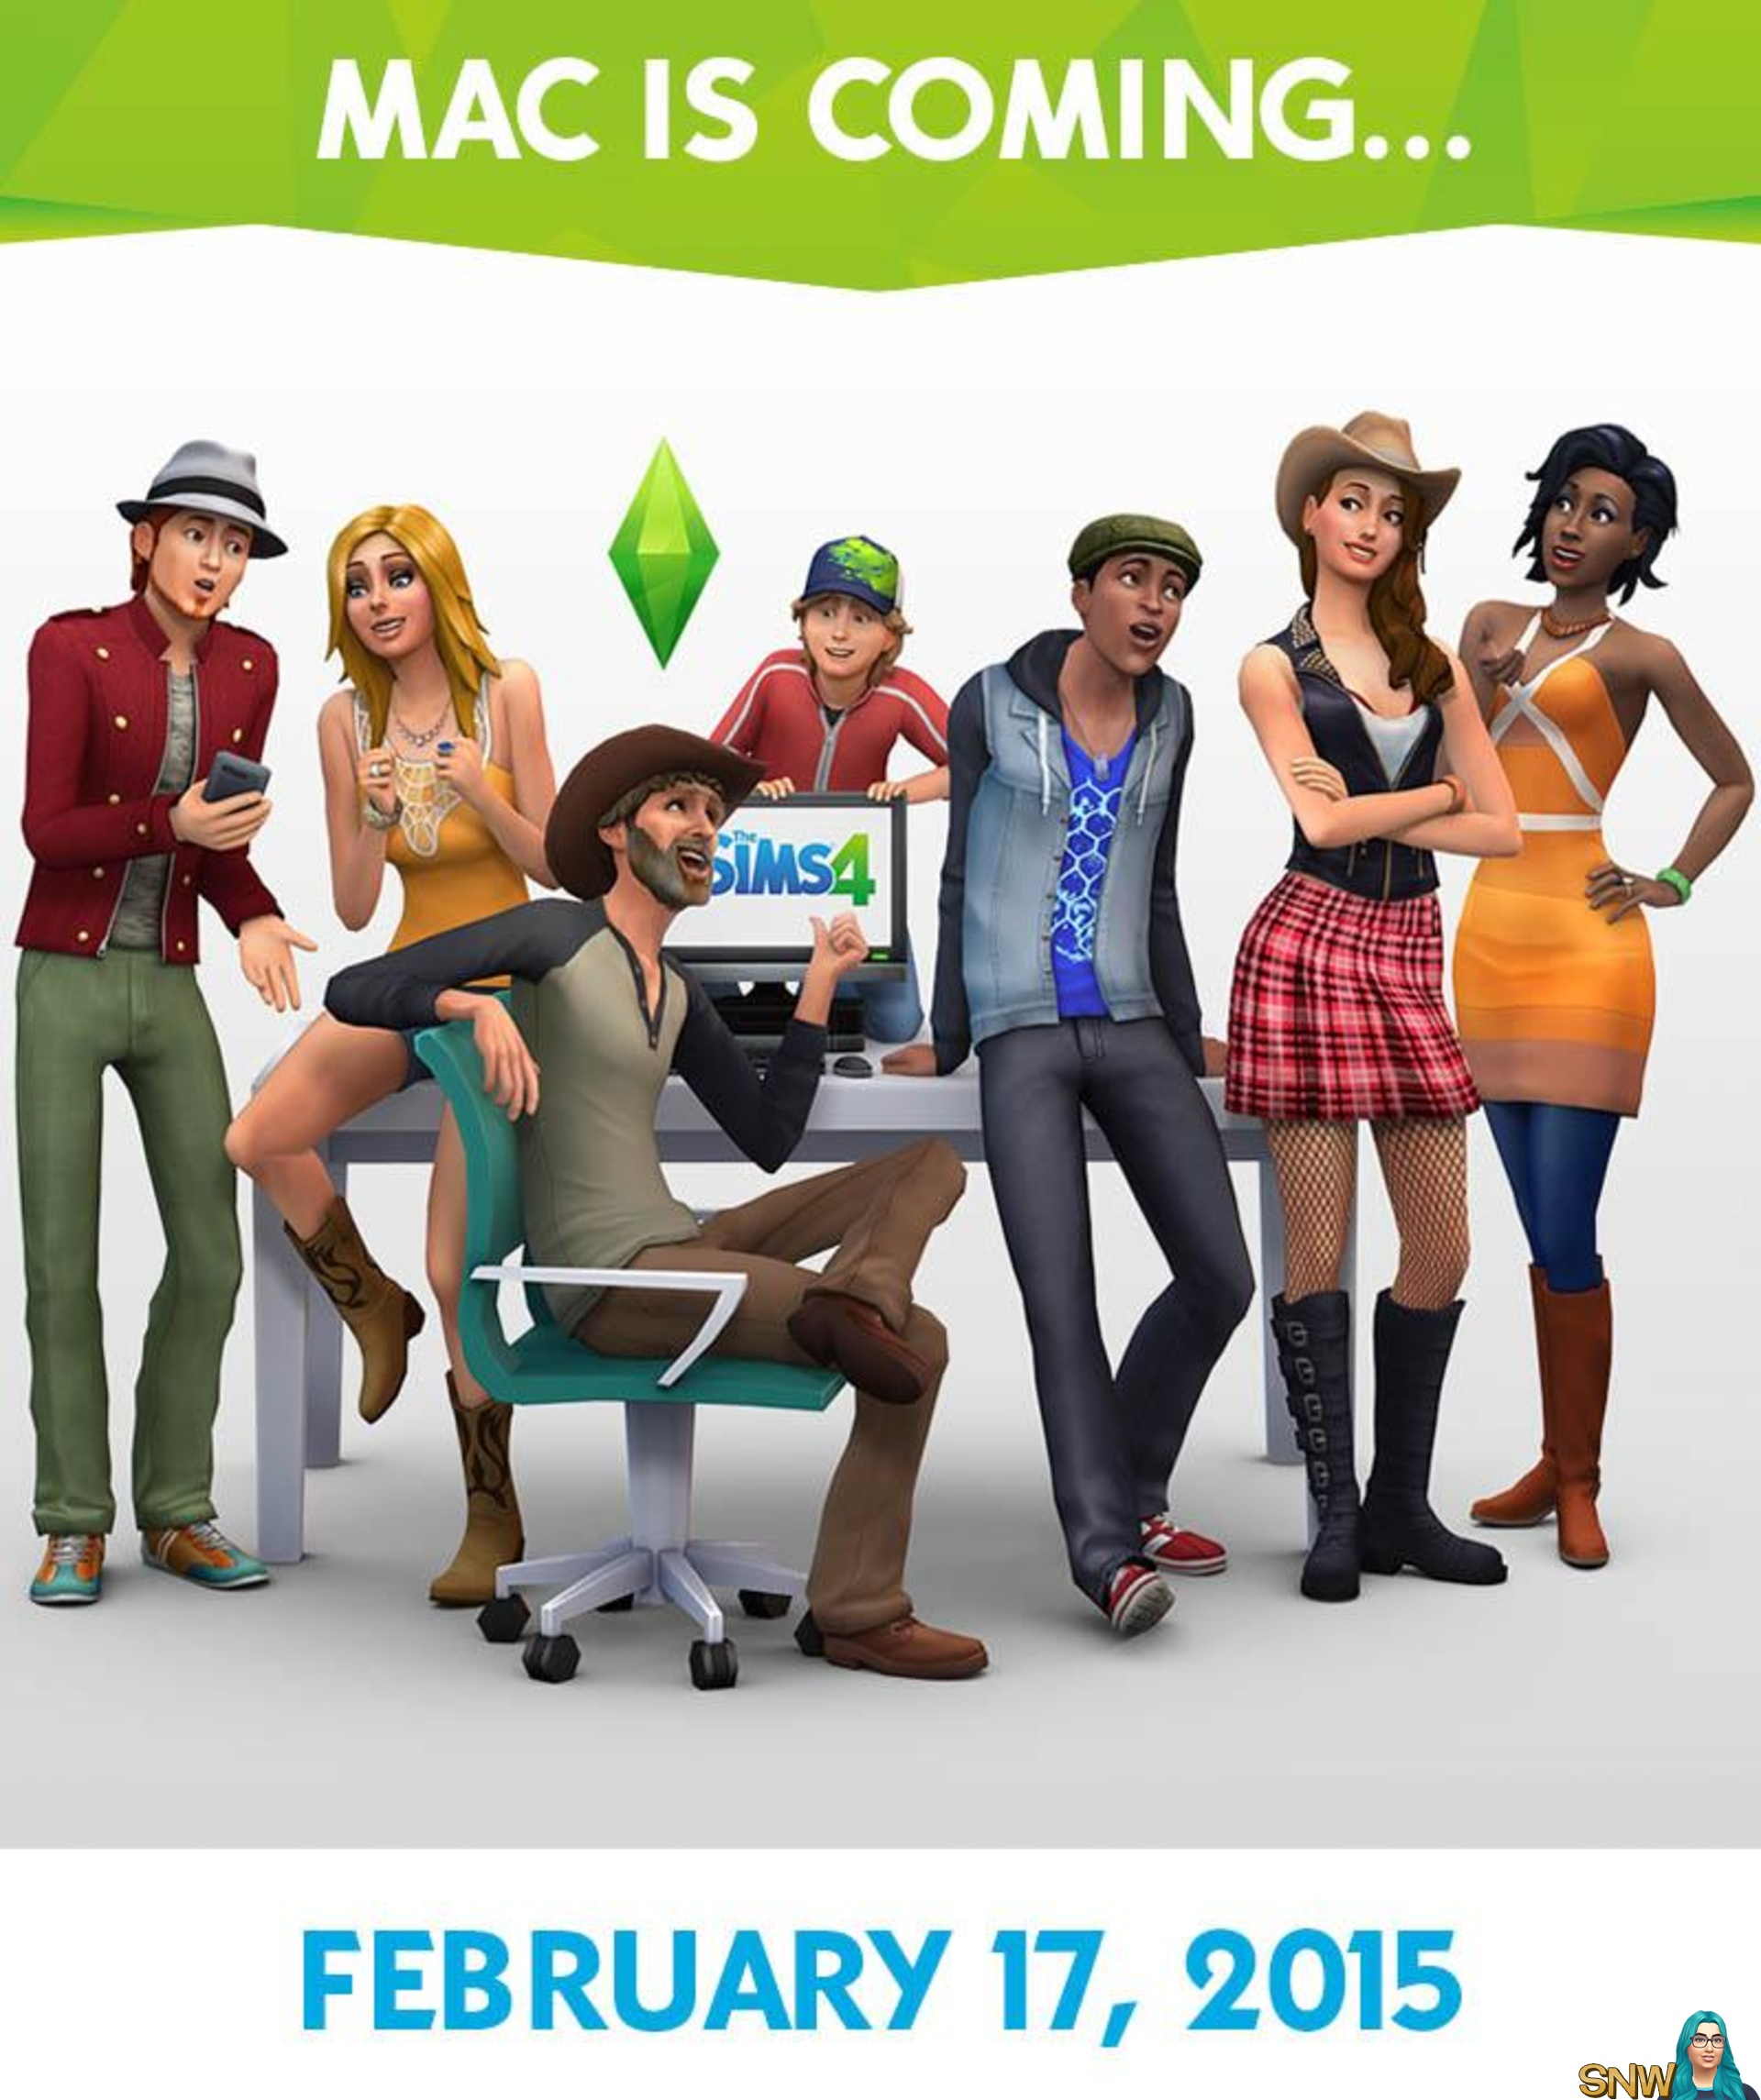 The Sims 4 on Mac